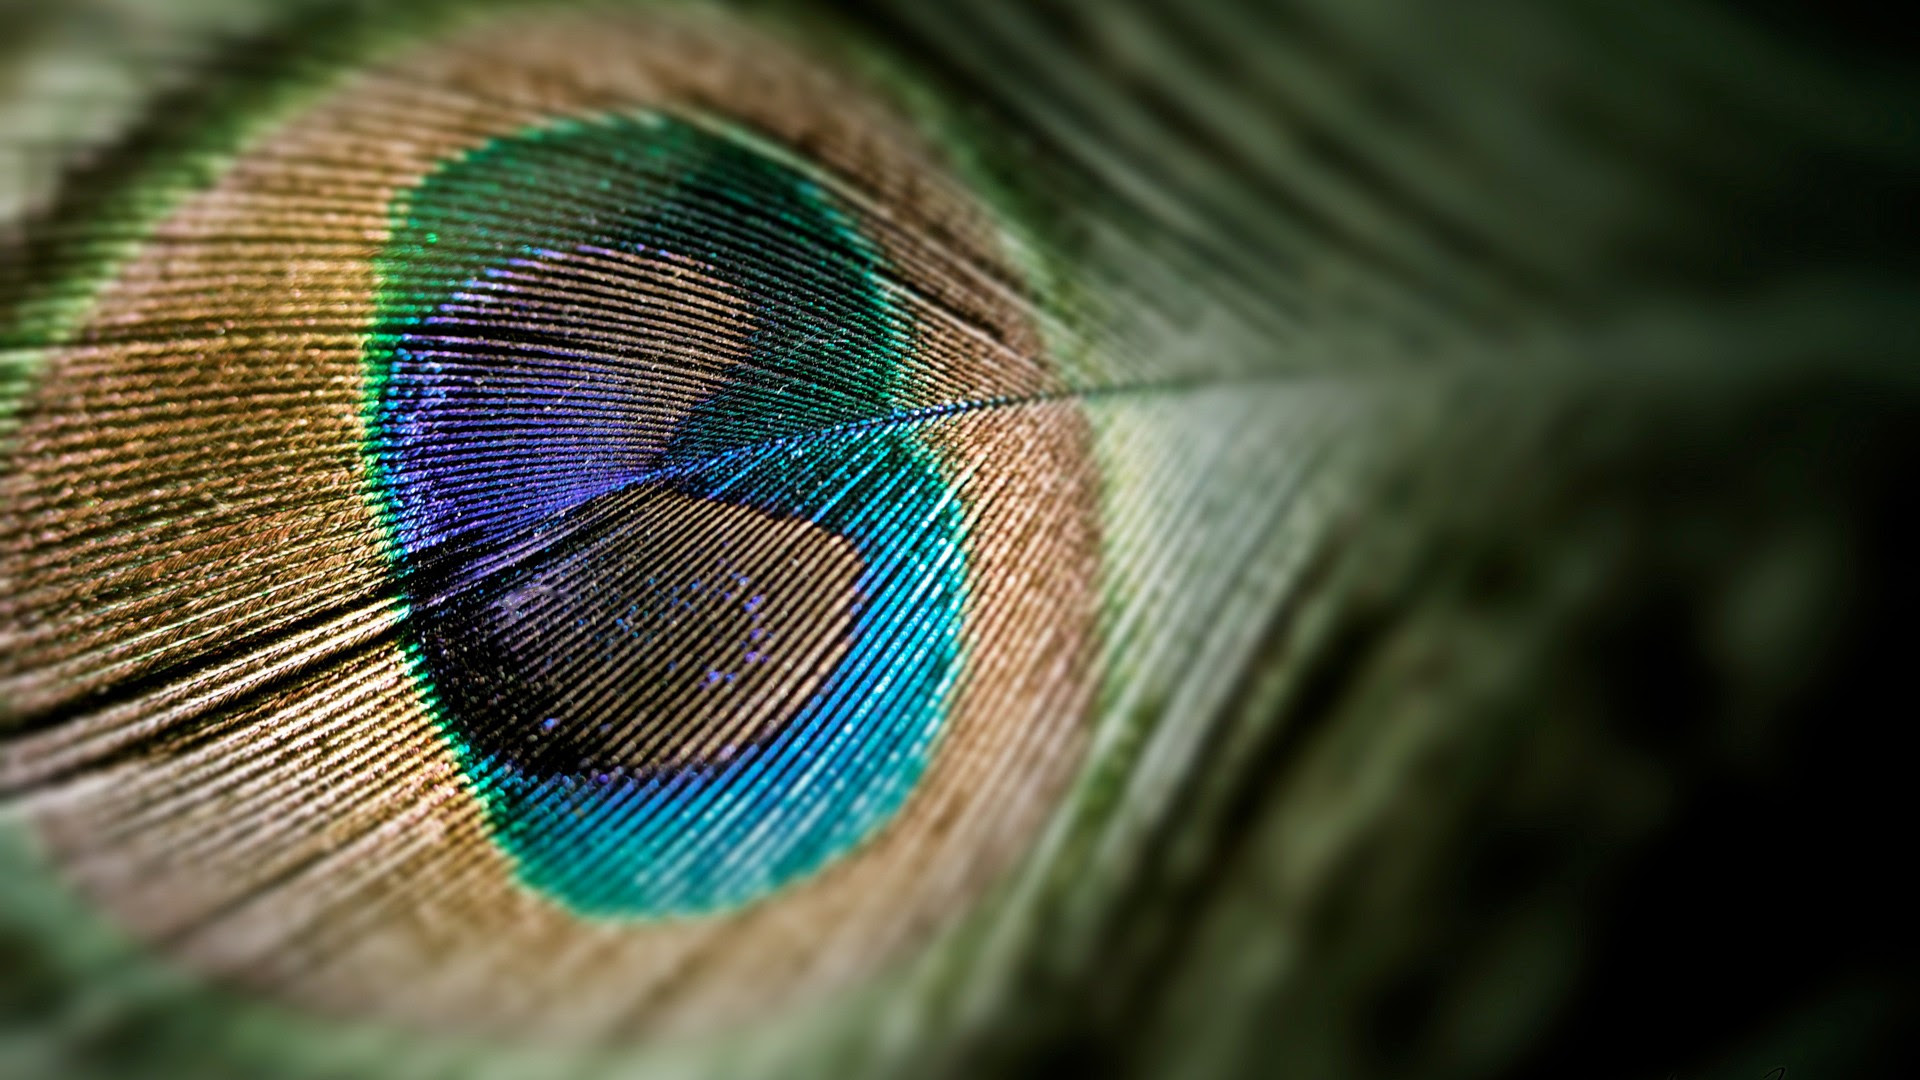 Peacock Feather [1920x1080]